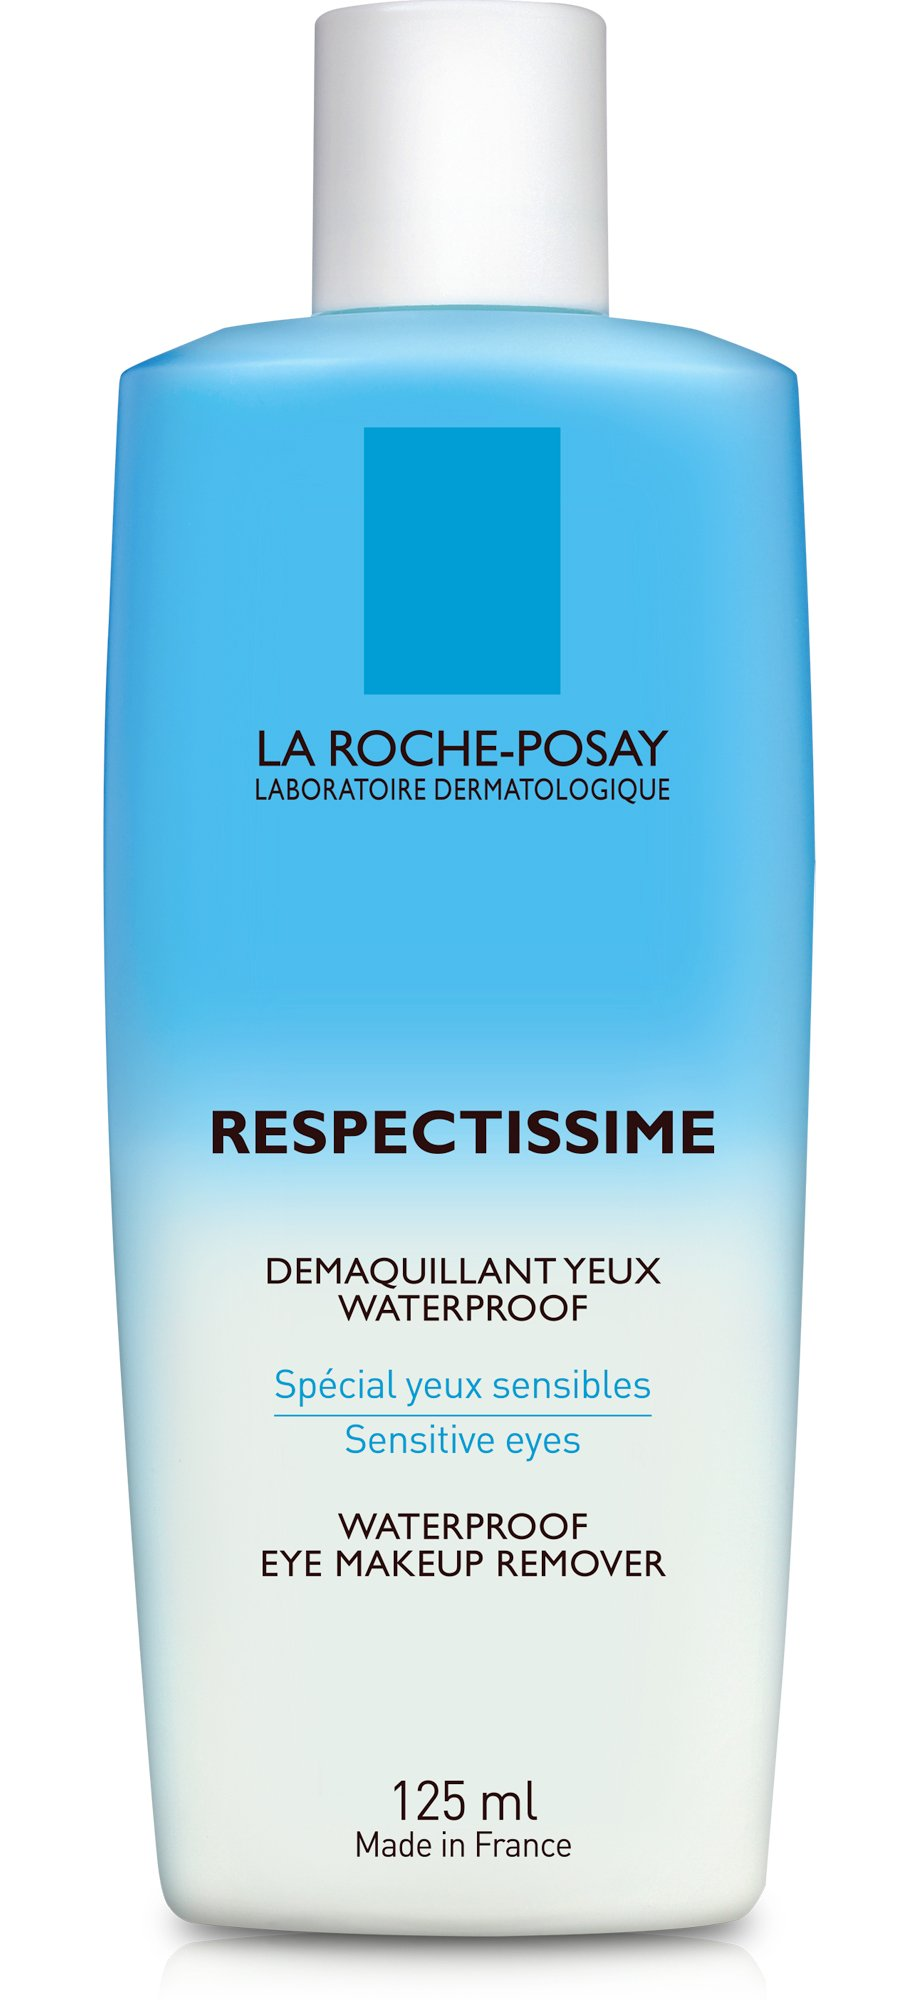 La Roche-Posay Respectissime Waterproof Eye Makeup Remover, 4.2 Fl Oz, Pack of